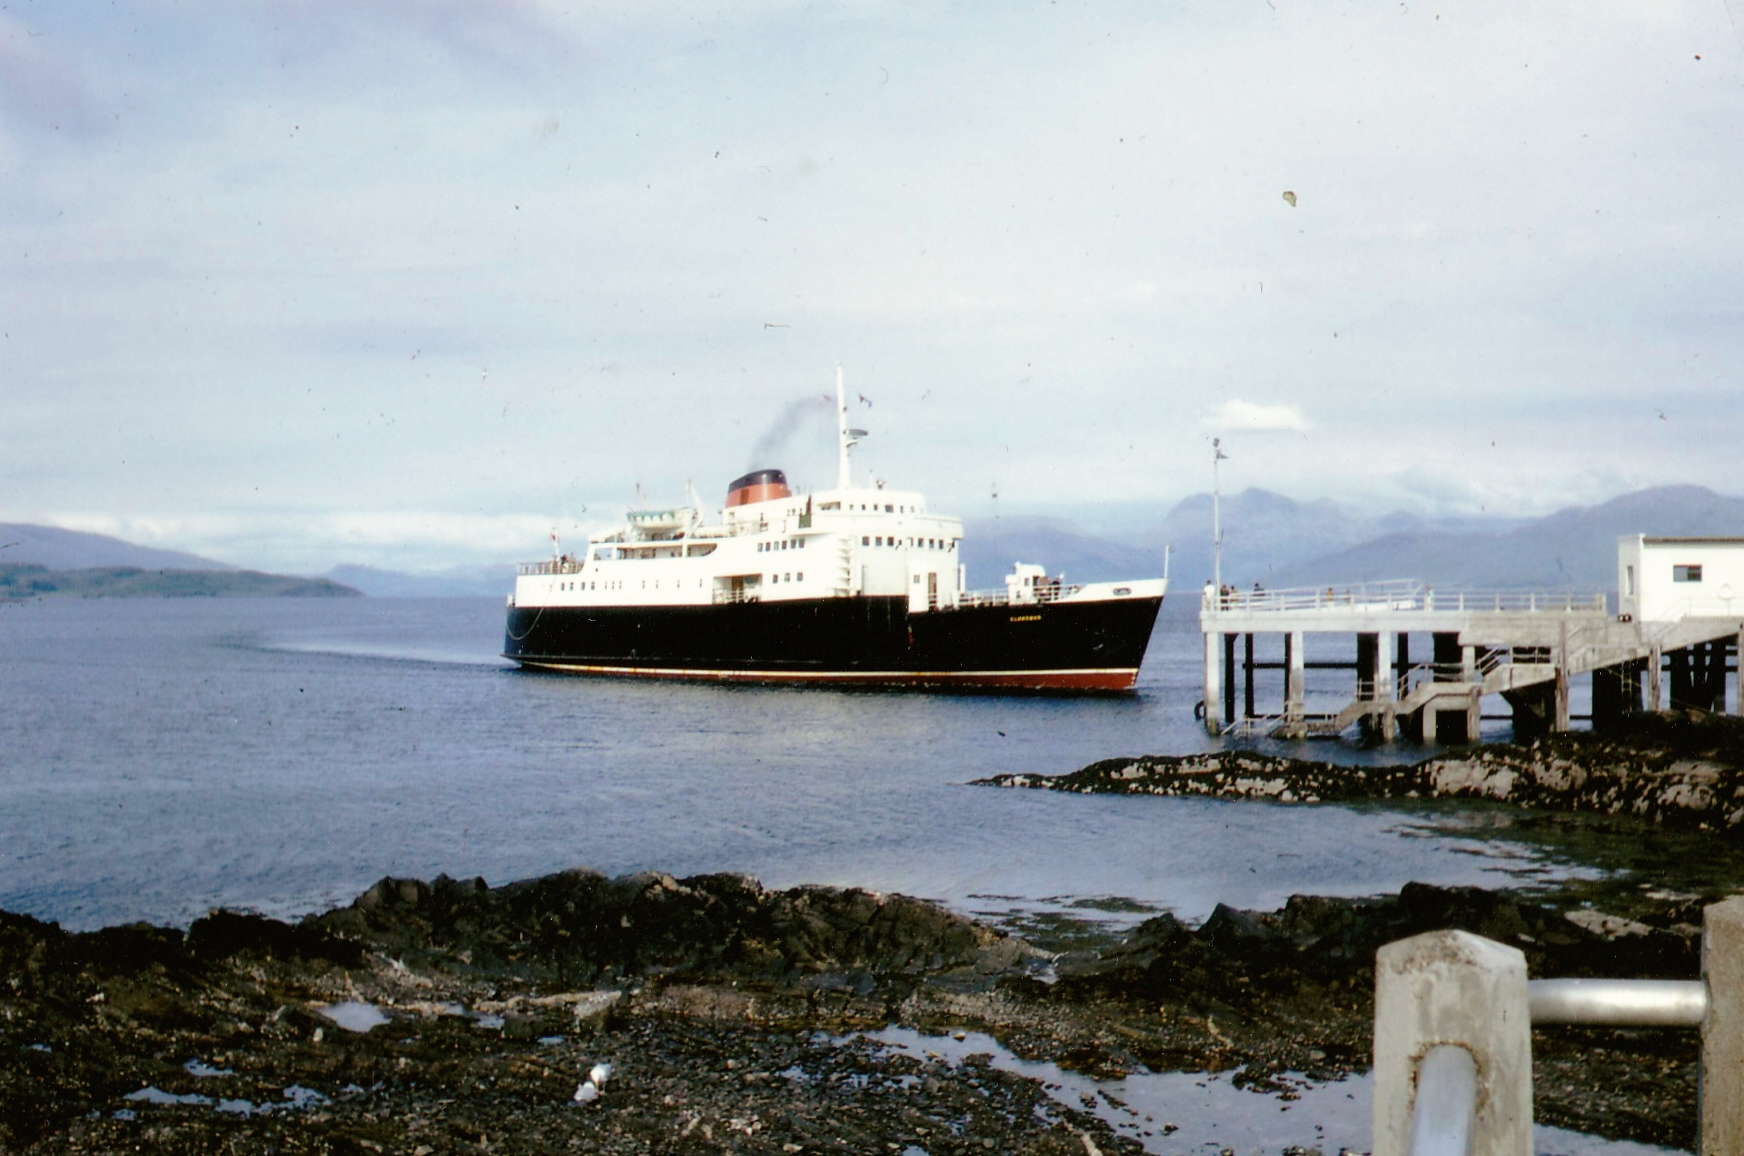 Clansman arriving at Armadale (Jim Aikman Smith)